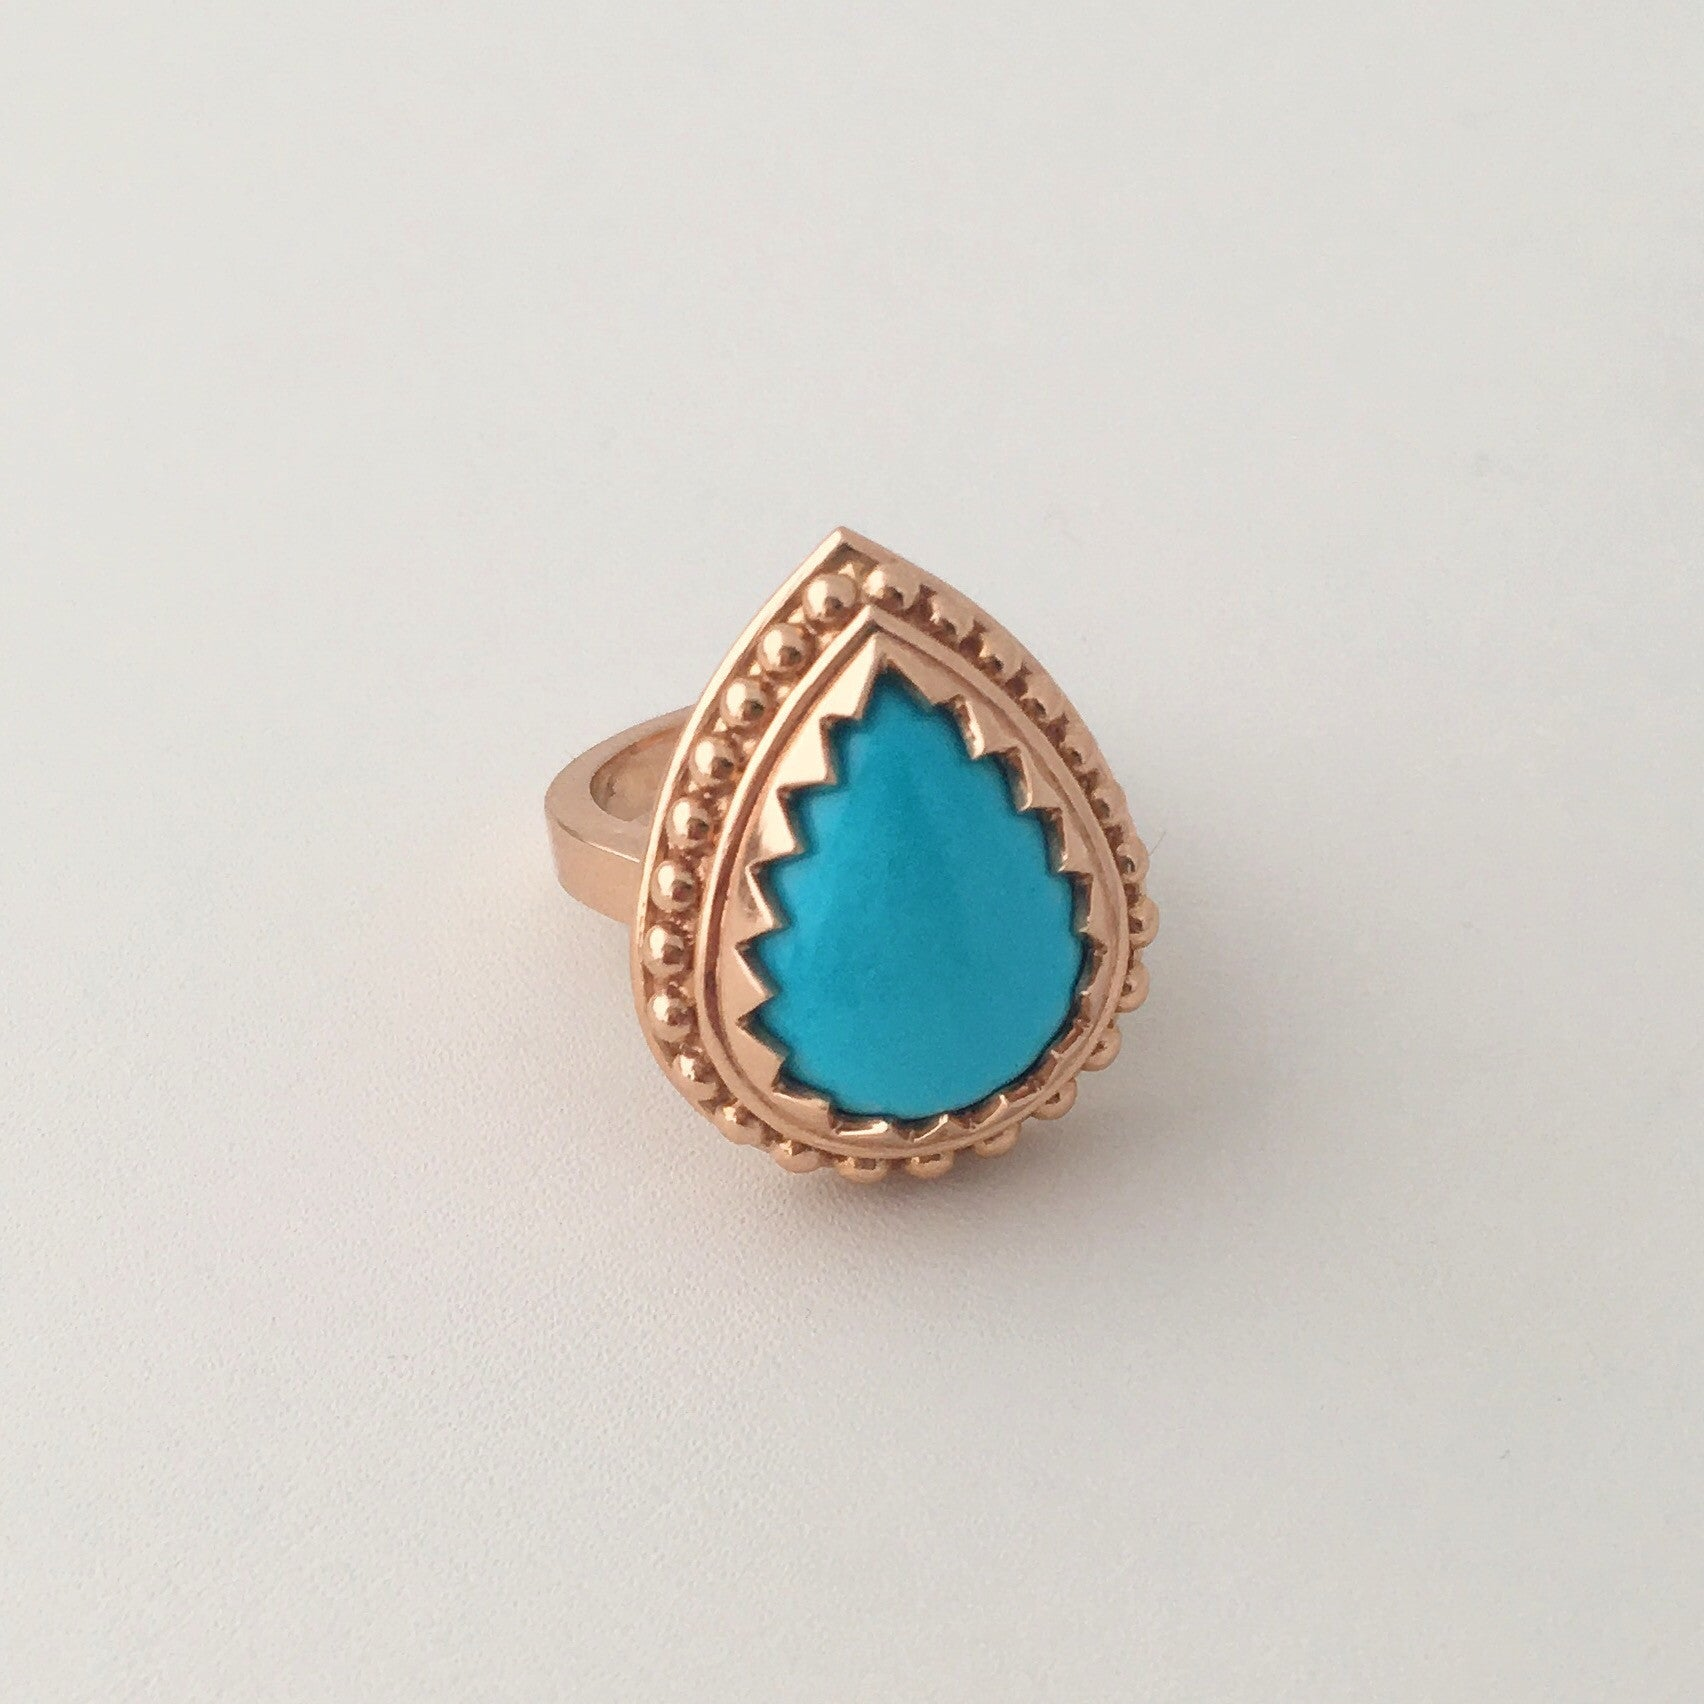 Teardrop ball ring